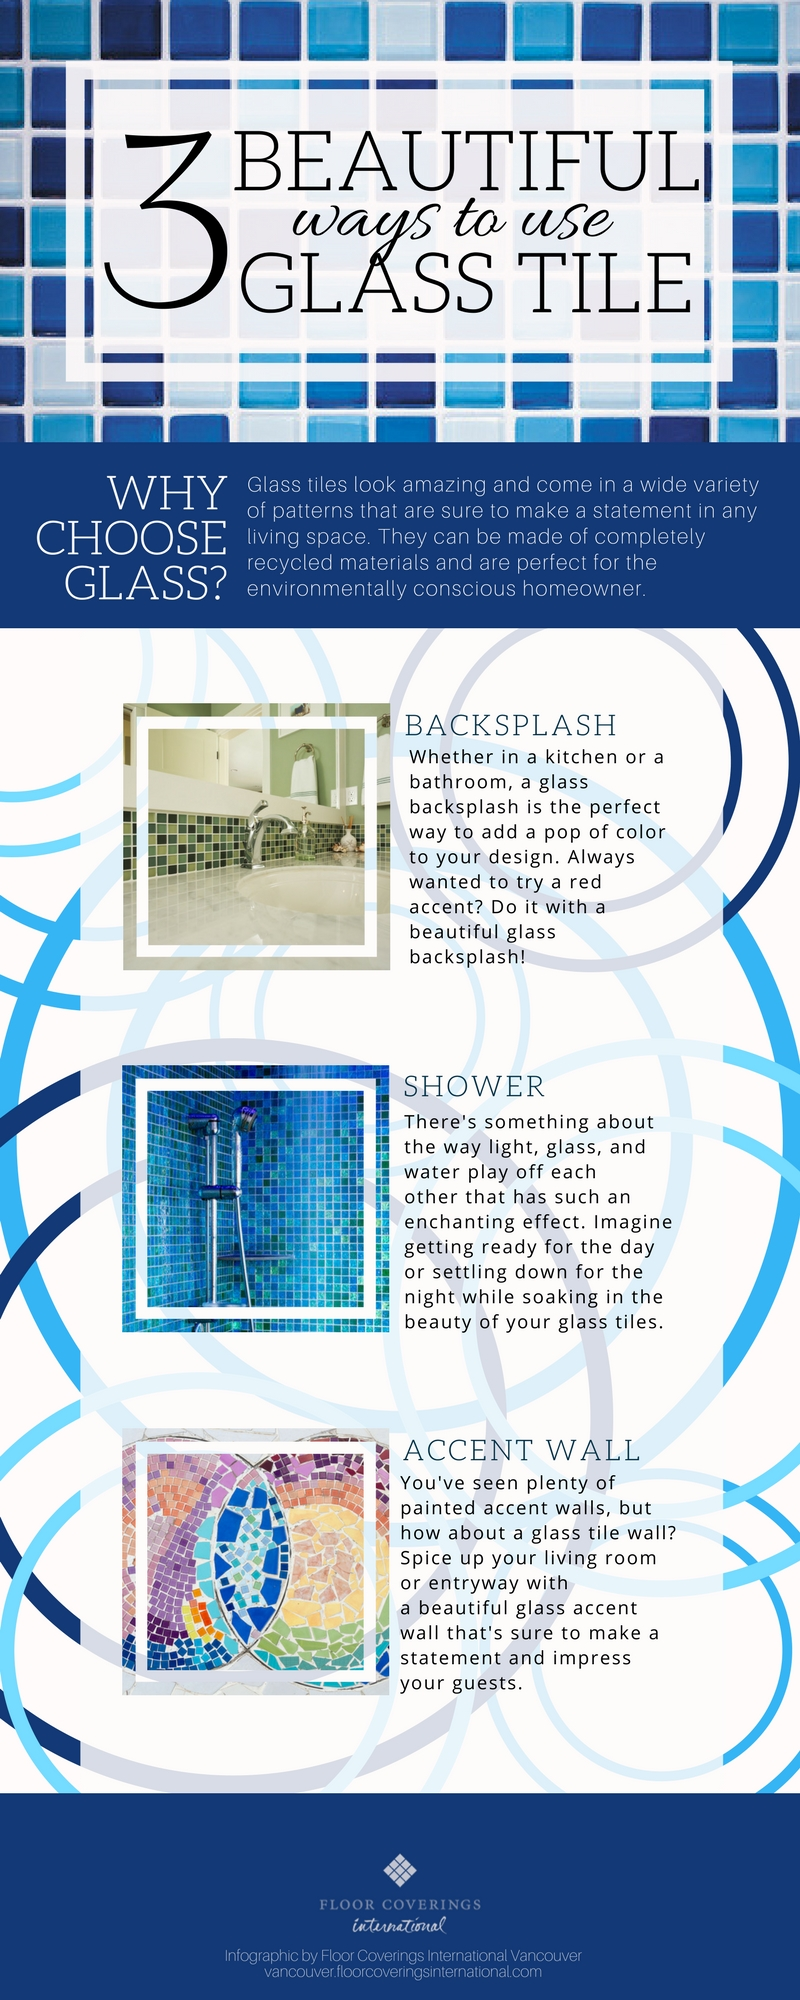 ways to use glass tile in vancouver